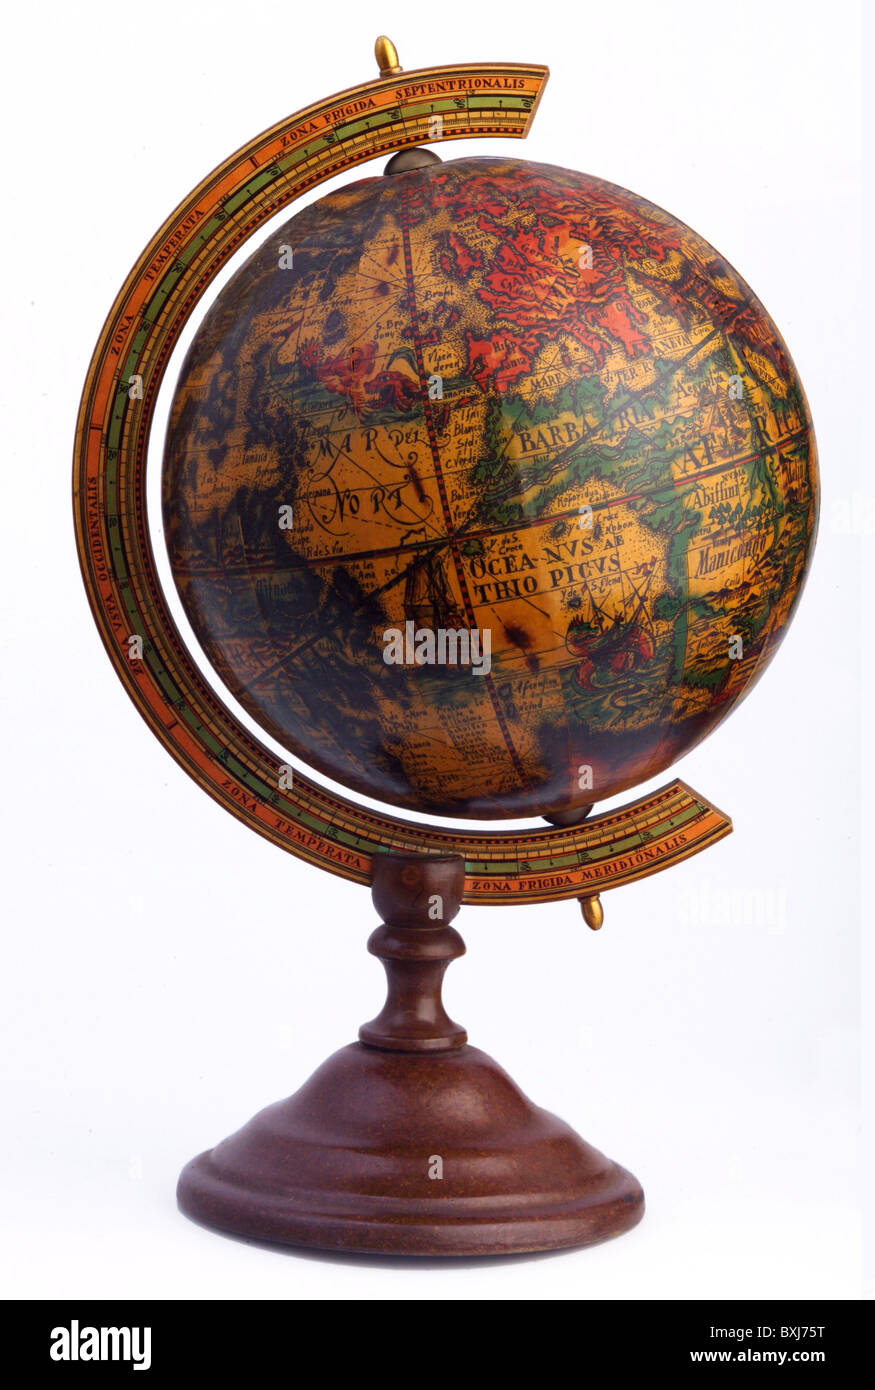 Cartography globes globe replication of an old world map from cartography globes globe replication of an old world map from 16th century germany 1930s historic historical 20th centur gumiabroncs Gallery